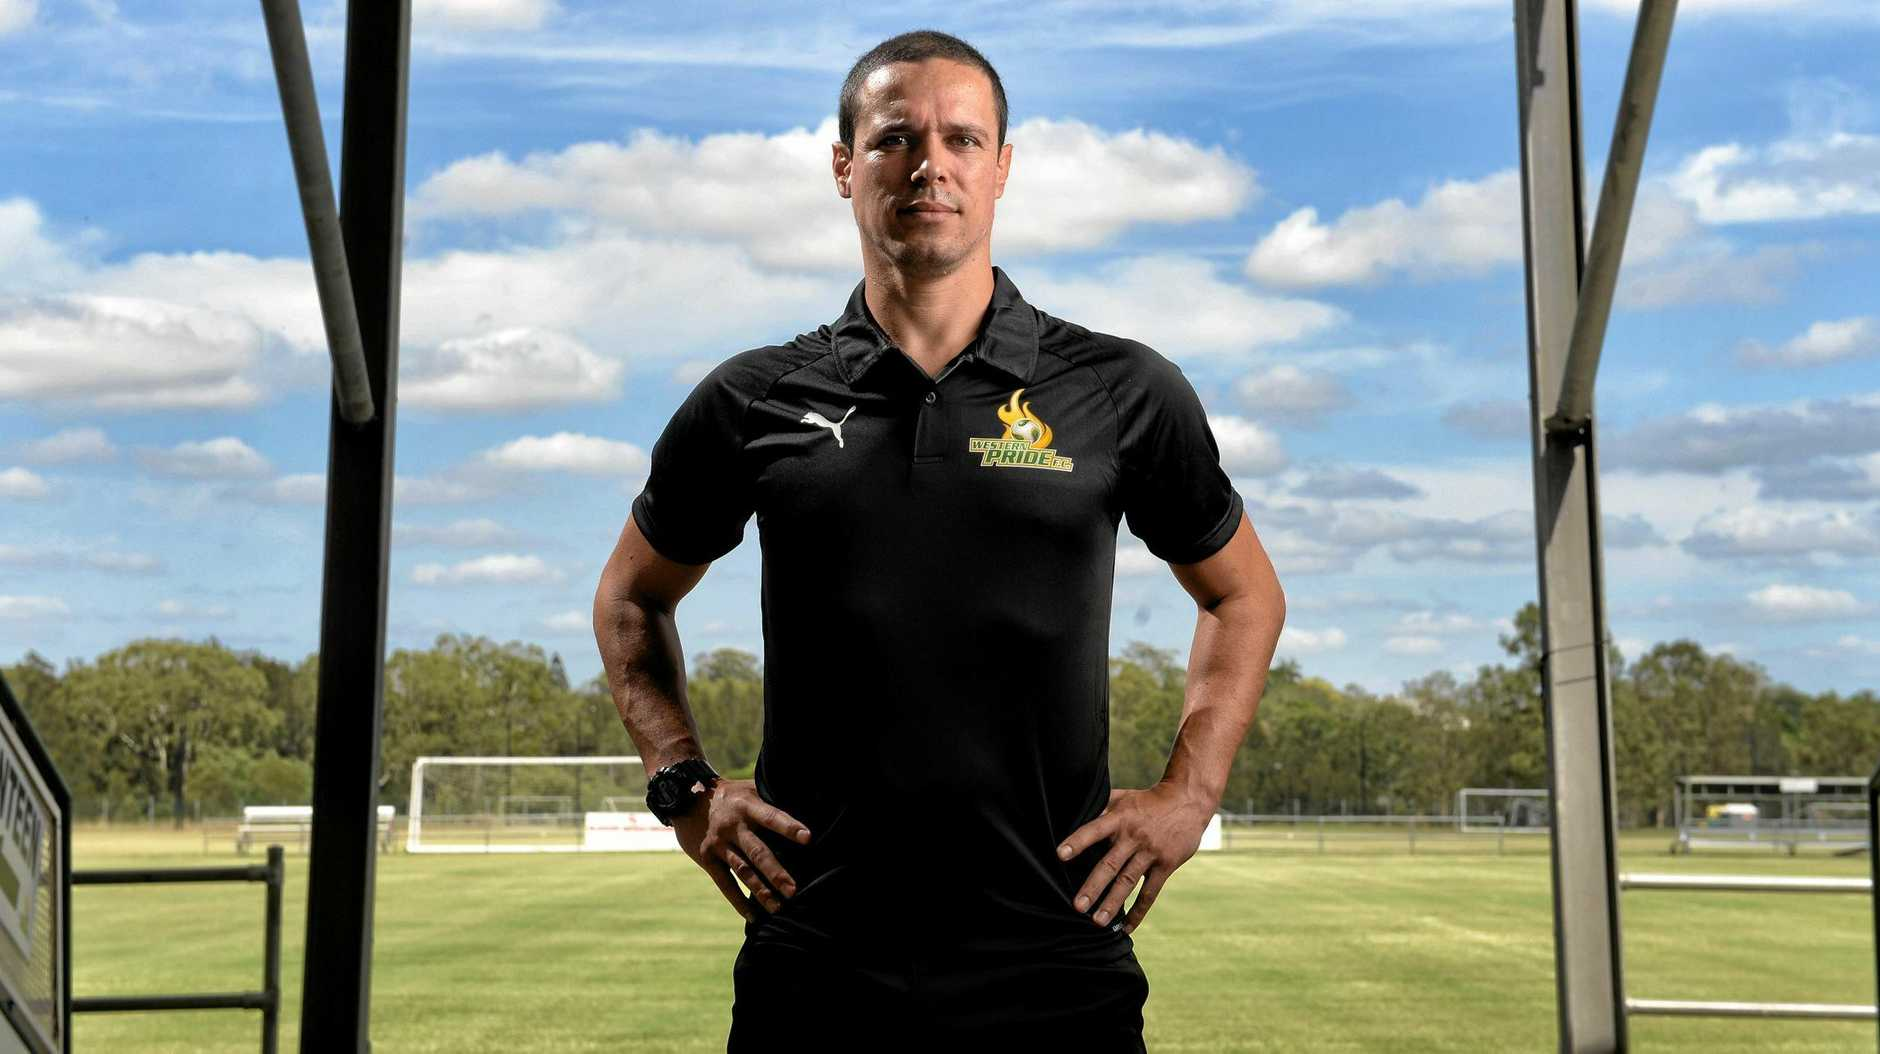 ON TARGET: Sergio Raimundo brings a wealth of experience in Europe and South America to his new role as Western Pride head coach.